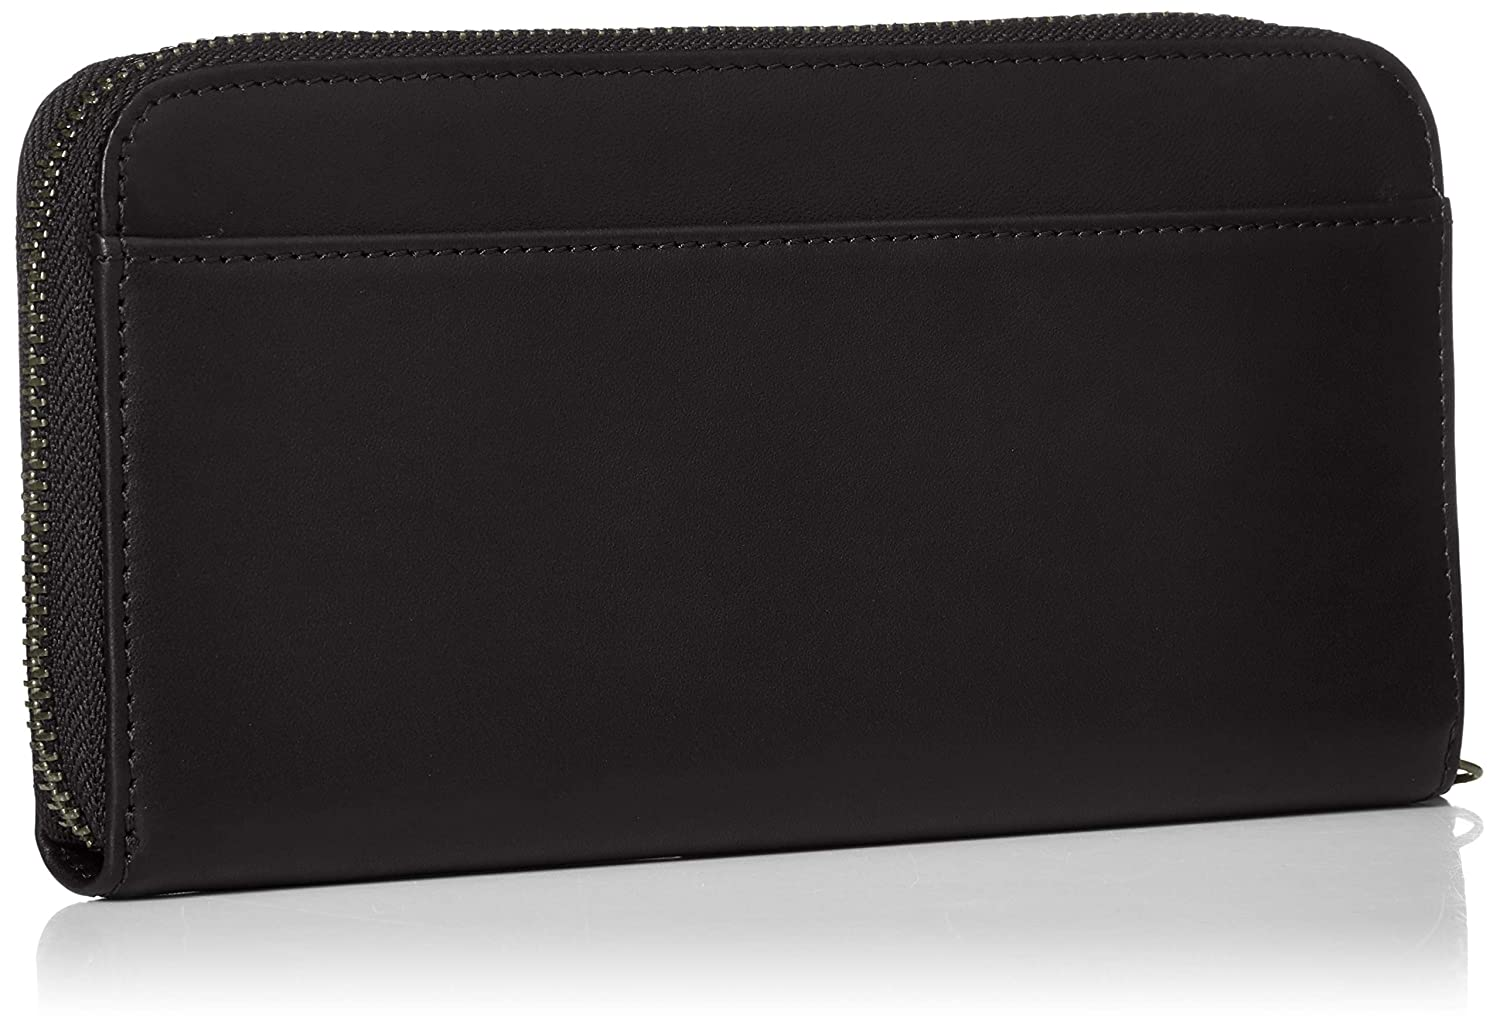 Victorinox Unisex Altius Edge Turing Zippered Deluxe Clutch Wallet w//RFID